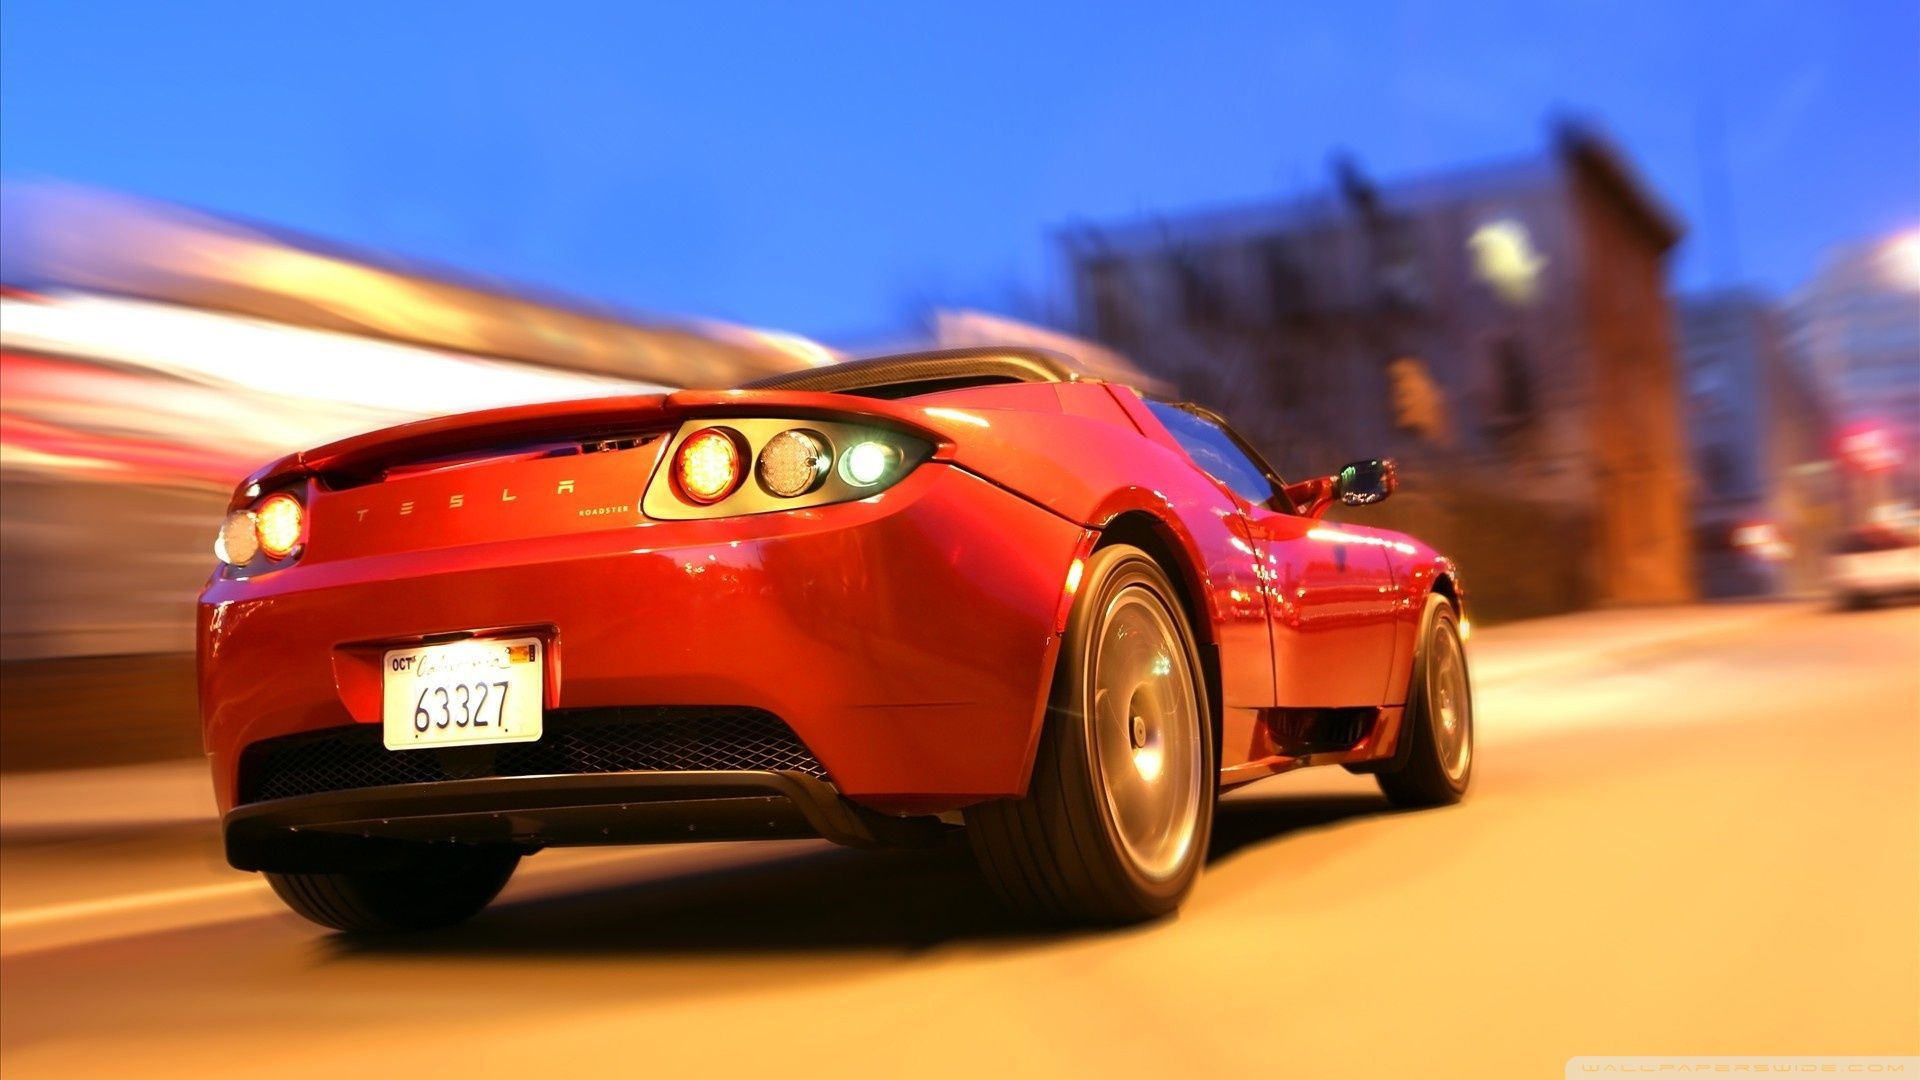 Tesla Roadster Black Wallpaper For Mac tesla roadster